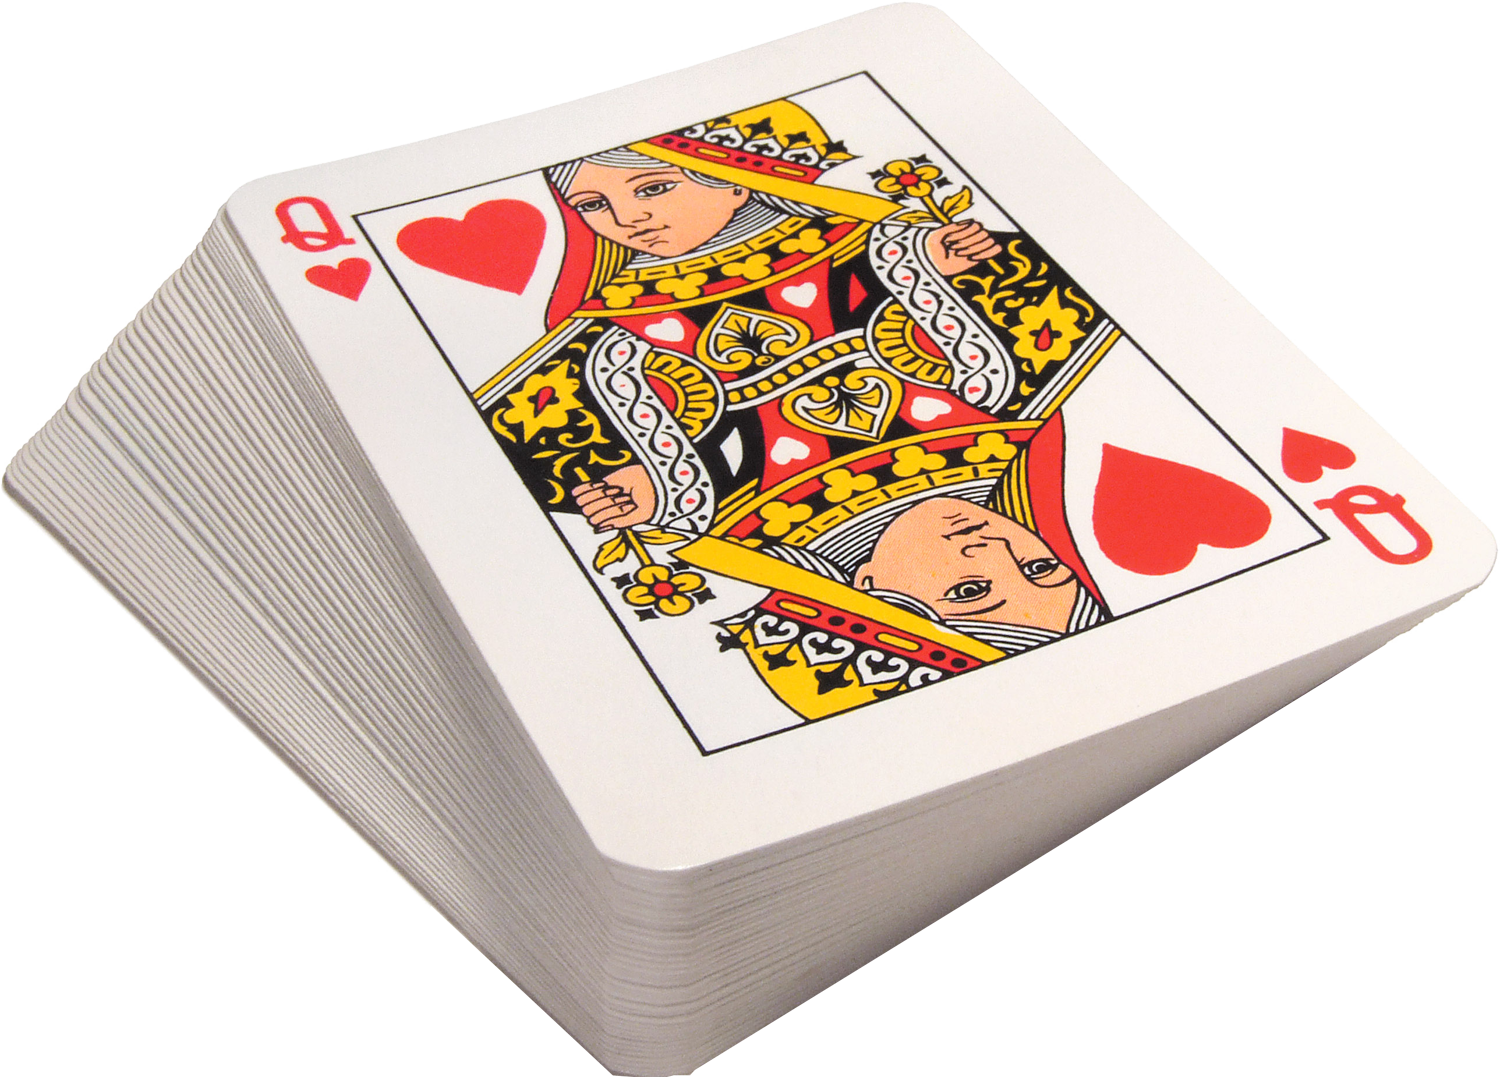 Deck of cards png. Images free download card